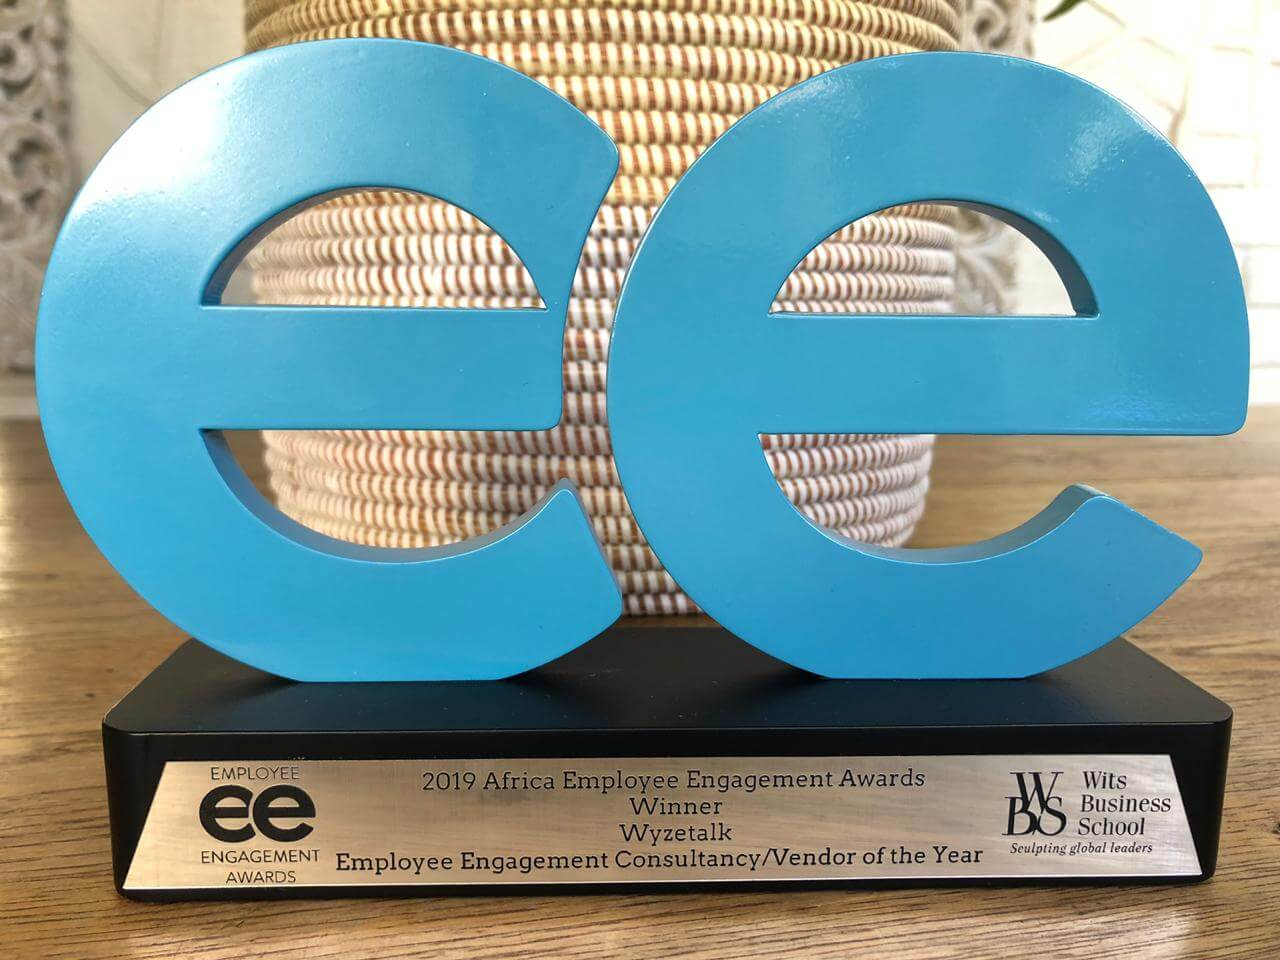 Wyzetalk wins 2019 Africa Employee Engagement Agency Vendor of the Year